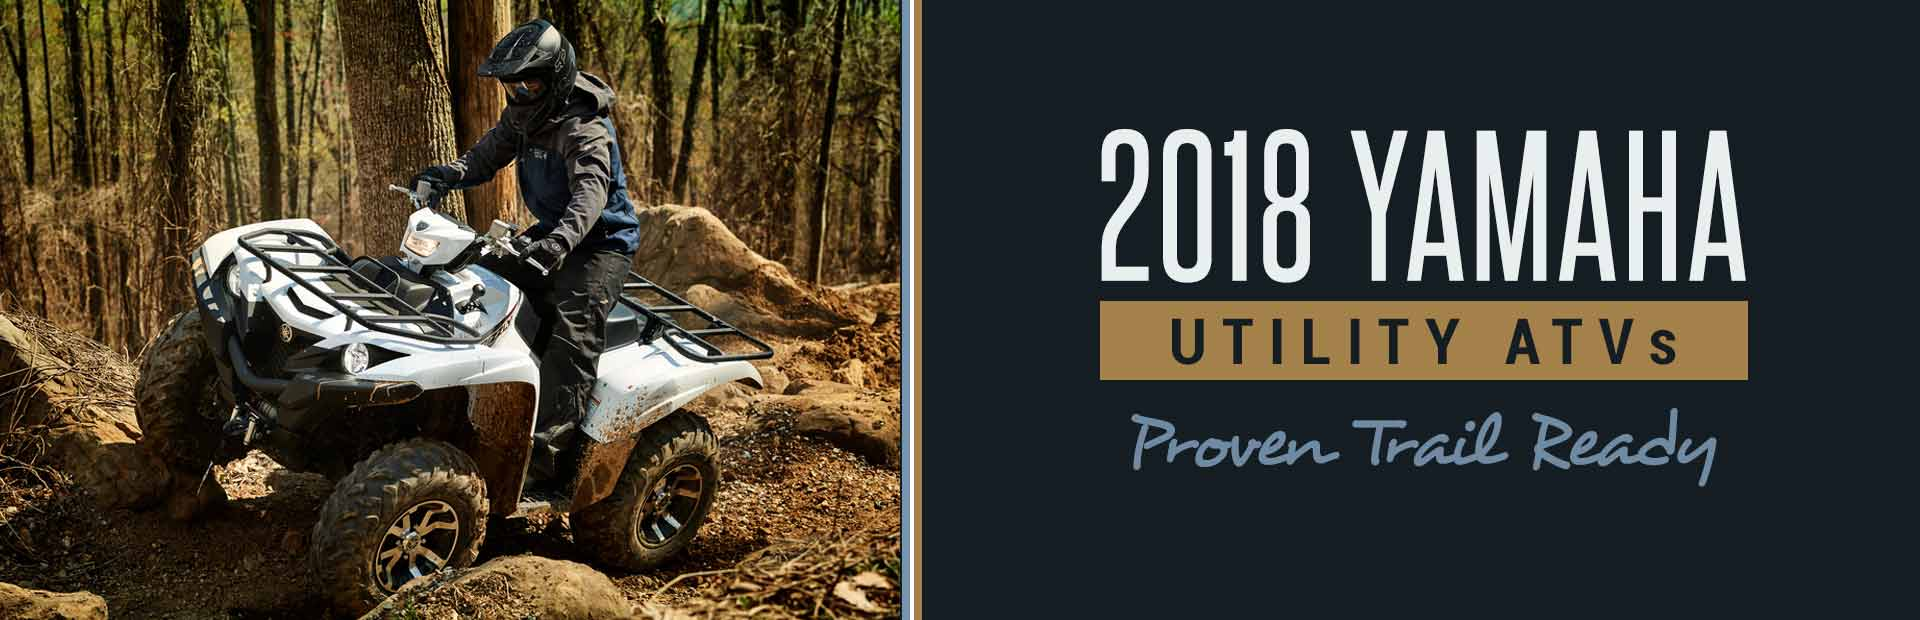 2018 Yamaha Utility ATVs: Click here to view the models.